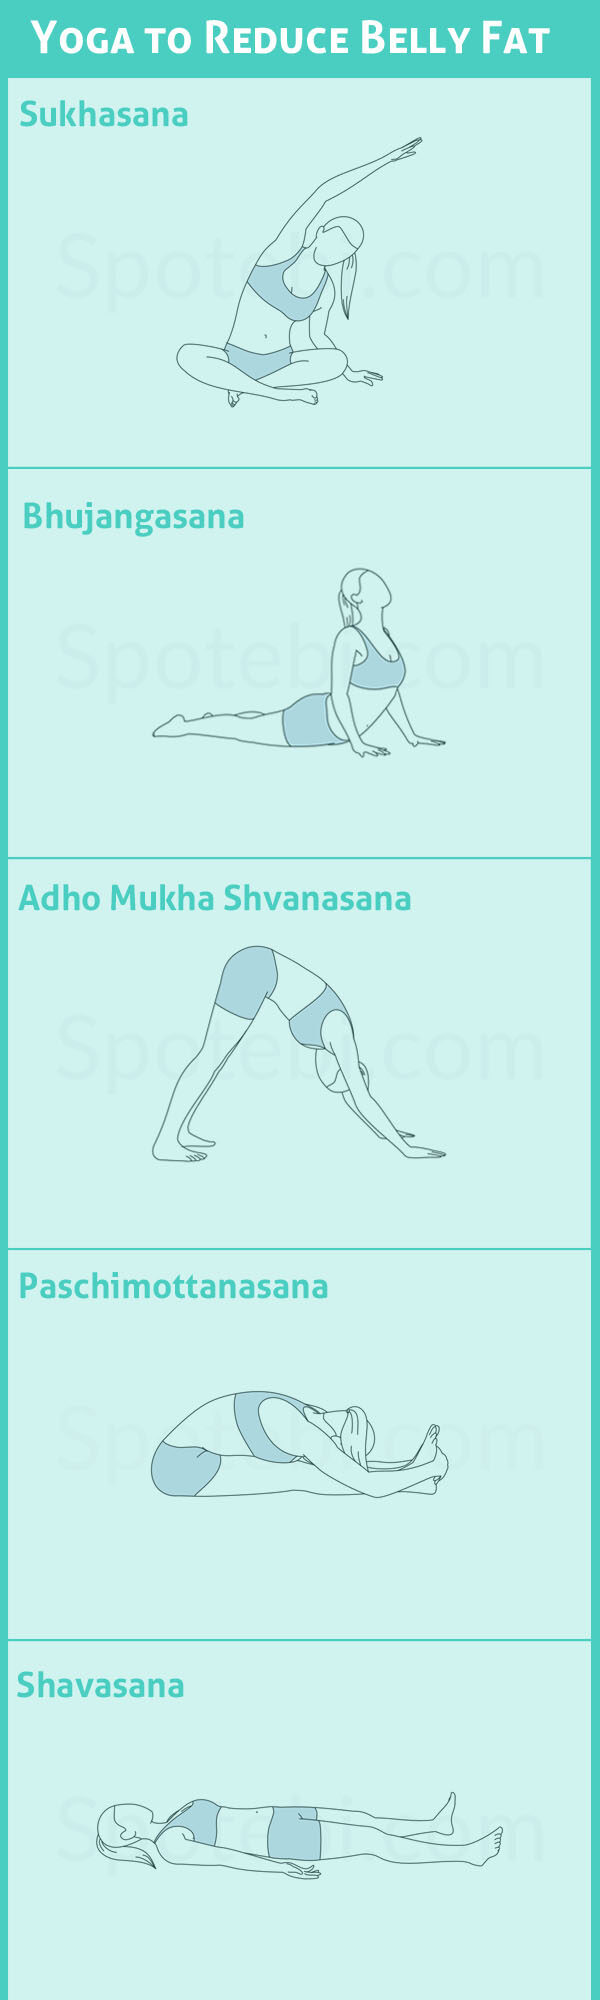 Yoga Exercises to Reduce Belly Fat